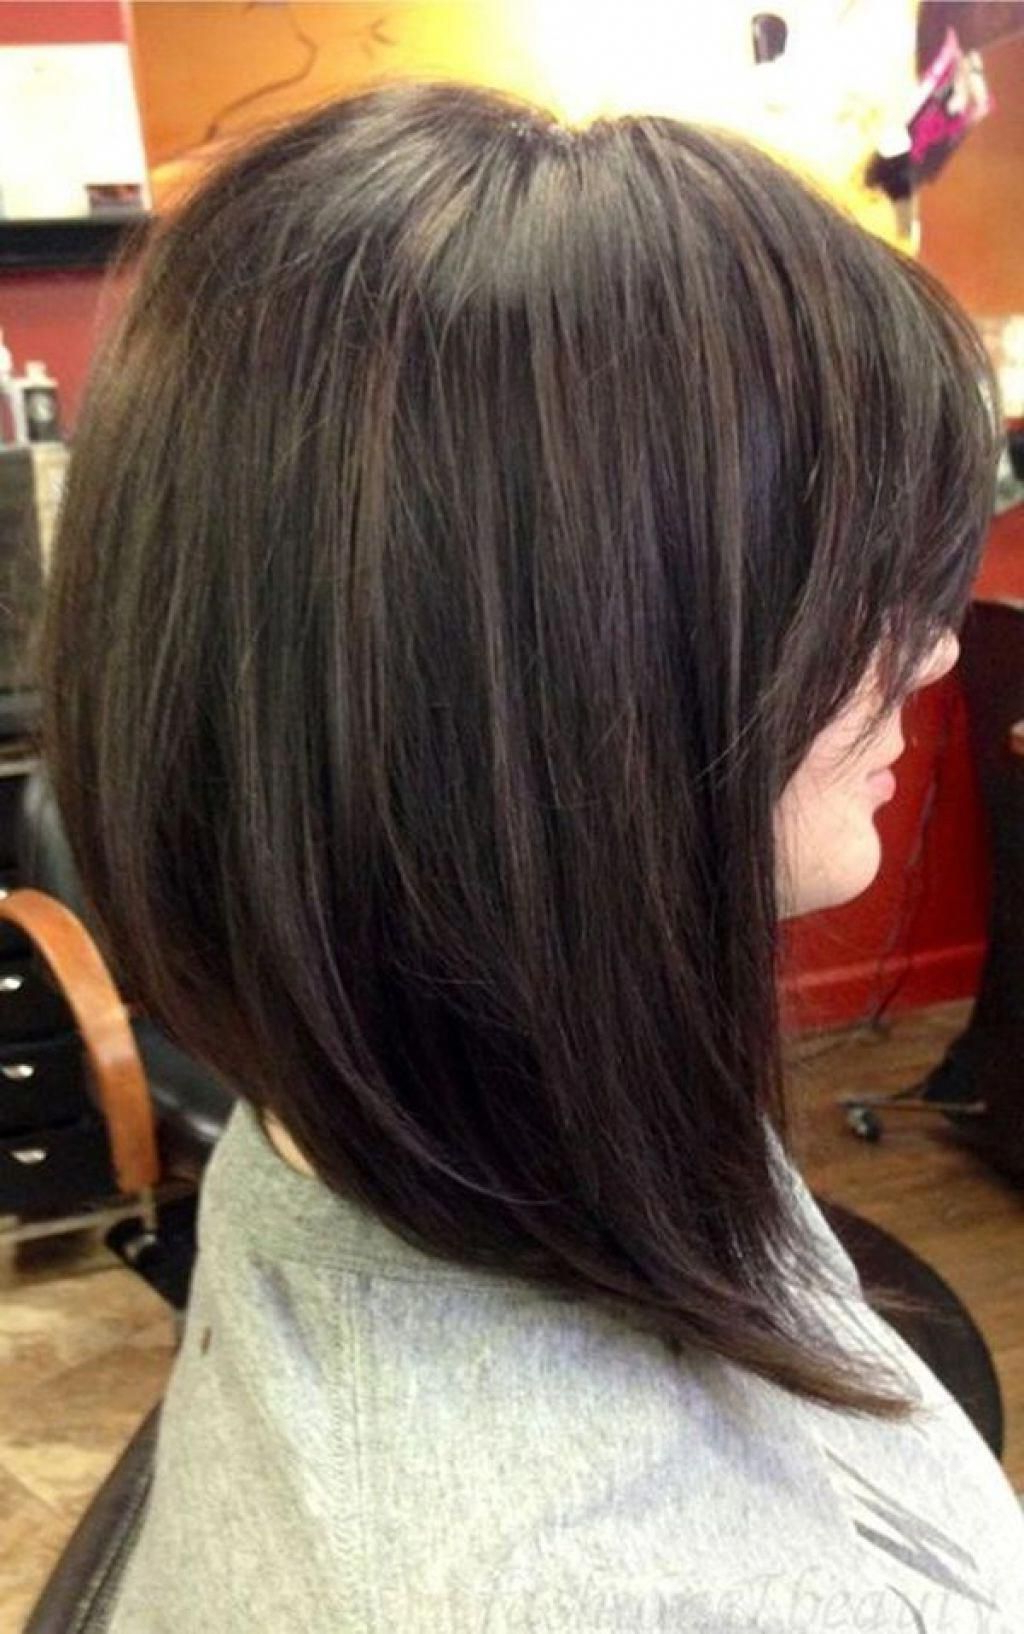 Pin On Long Bob Haircuts With Bangs Within Well Known Modern Swing Bob Hairstyles With Bangs (View 16 of 20)